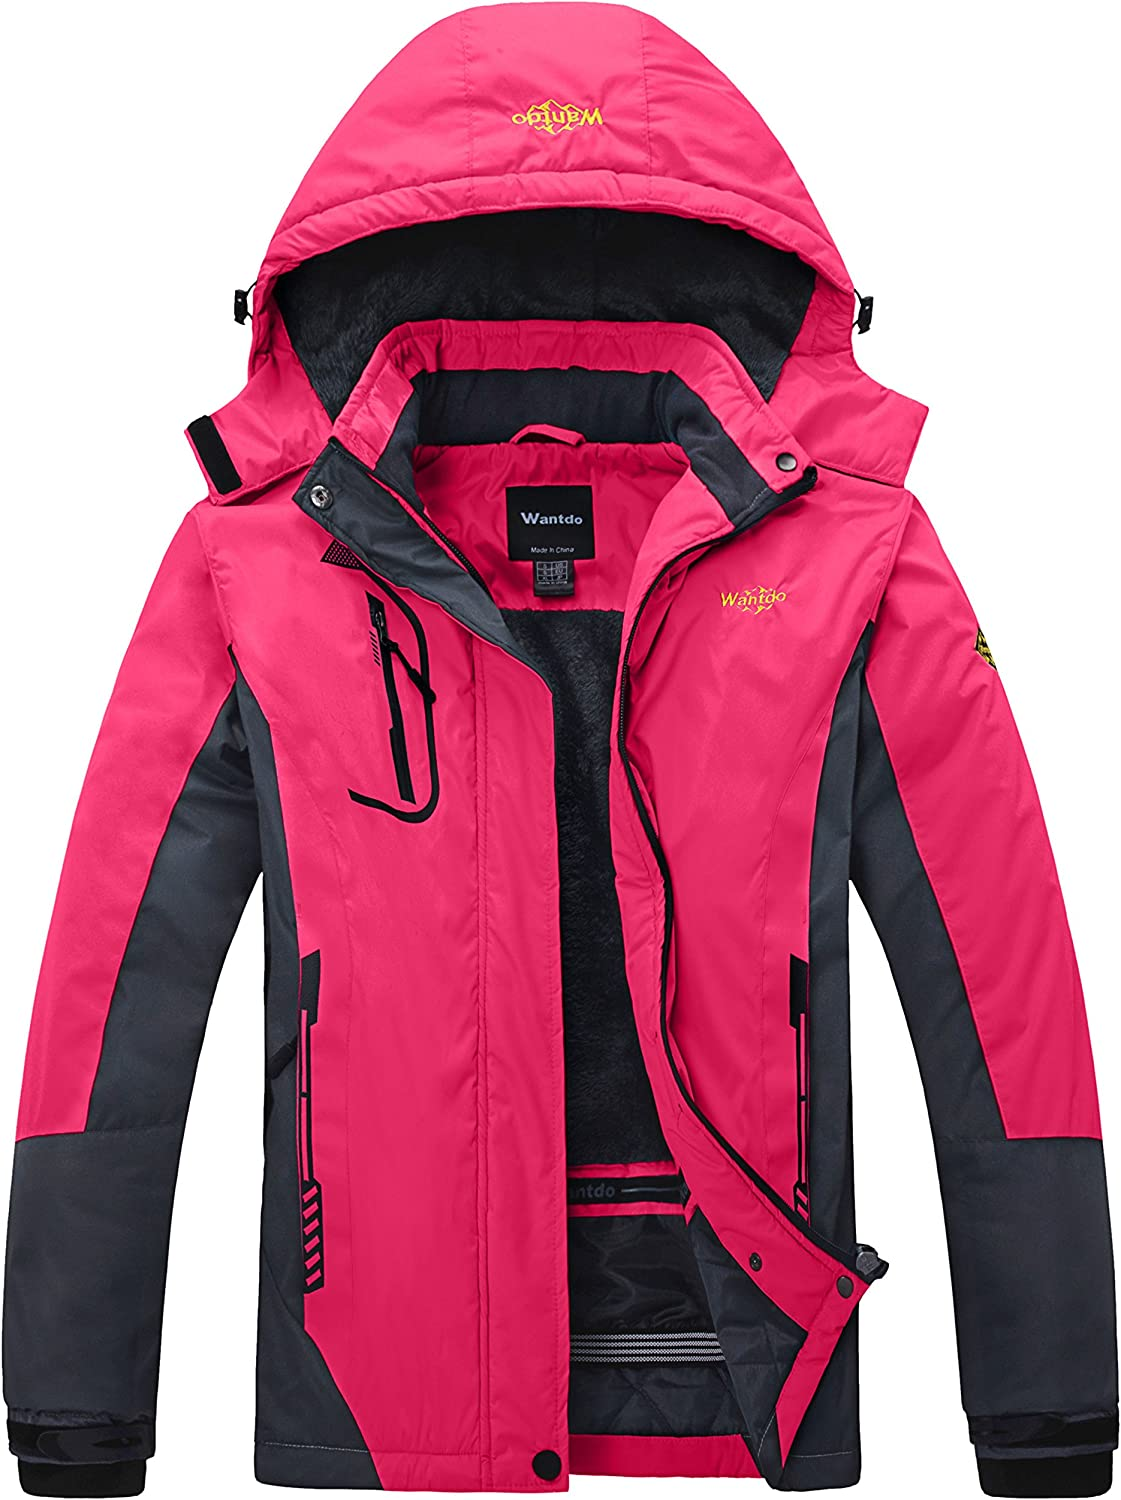 Wantdo Women's Mountain Waterproof Ski Jacket Windproof Rain Jacket Winter Warm Snow Coat